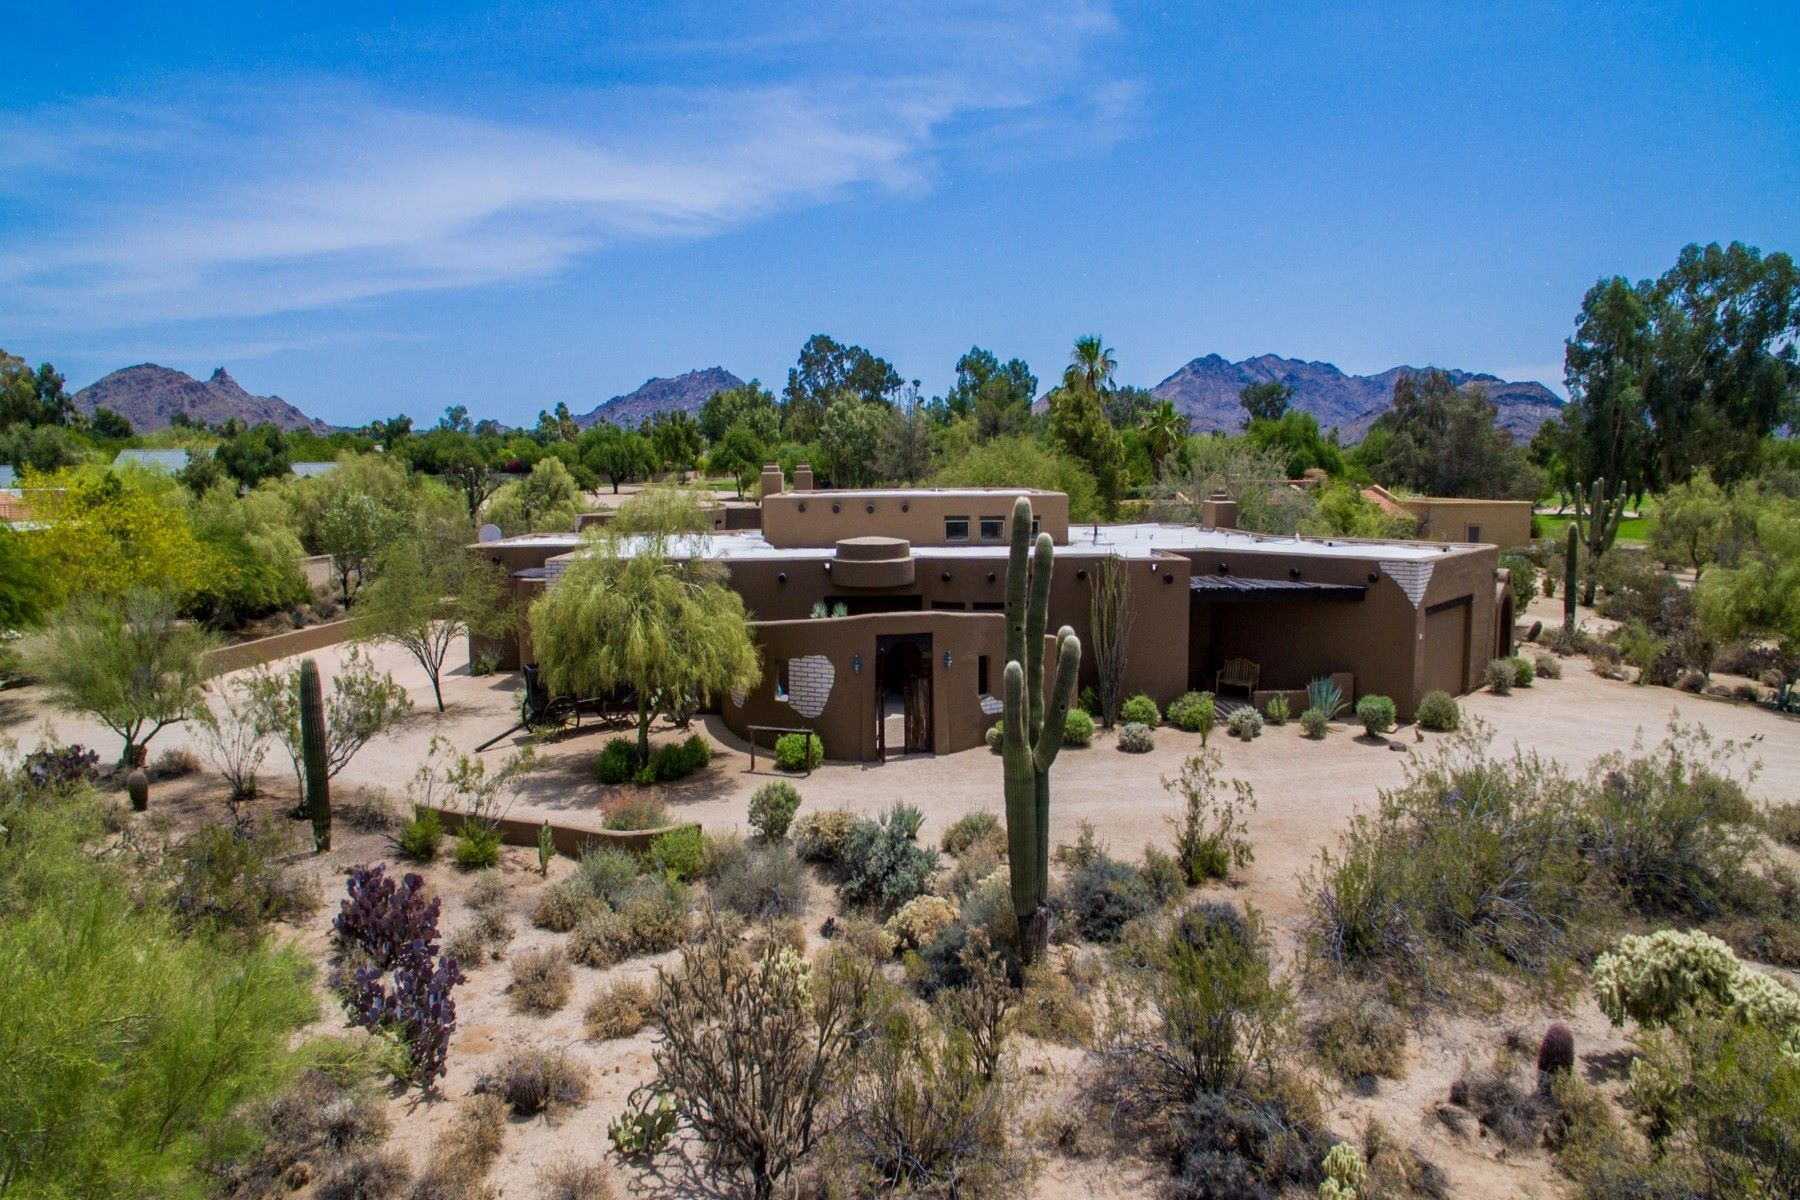 一戸建て のために 売買 アット Uniquely authentic Santa Fe property set in gated Pinnacle Peak Estates II 8124 E Via De Luna Dr Scottsdale, アリゾナ, 85255 アメリカ合衆国